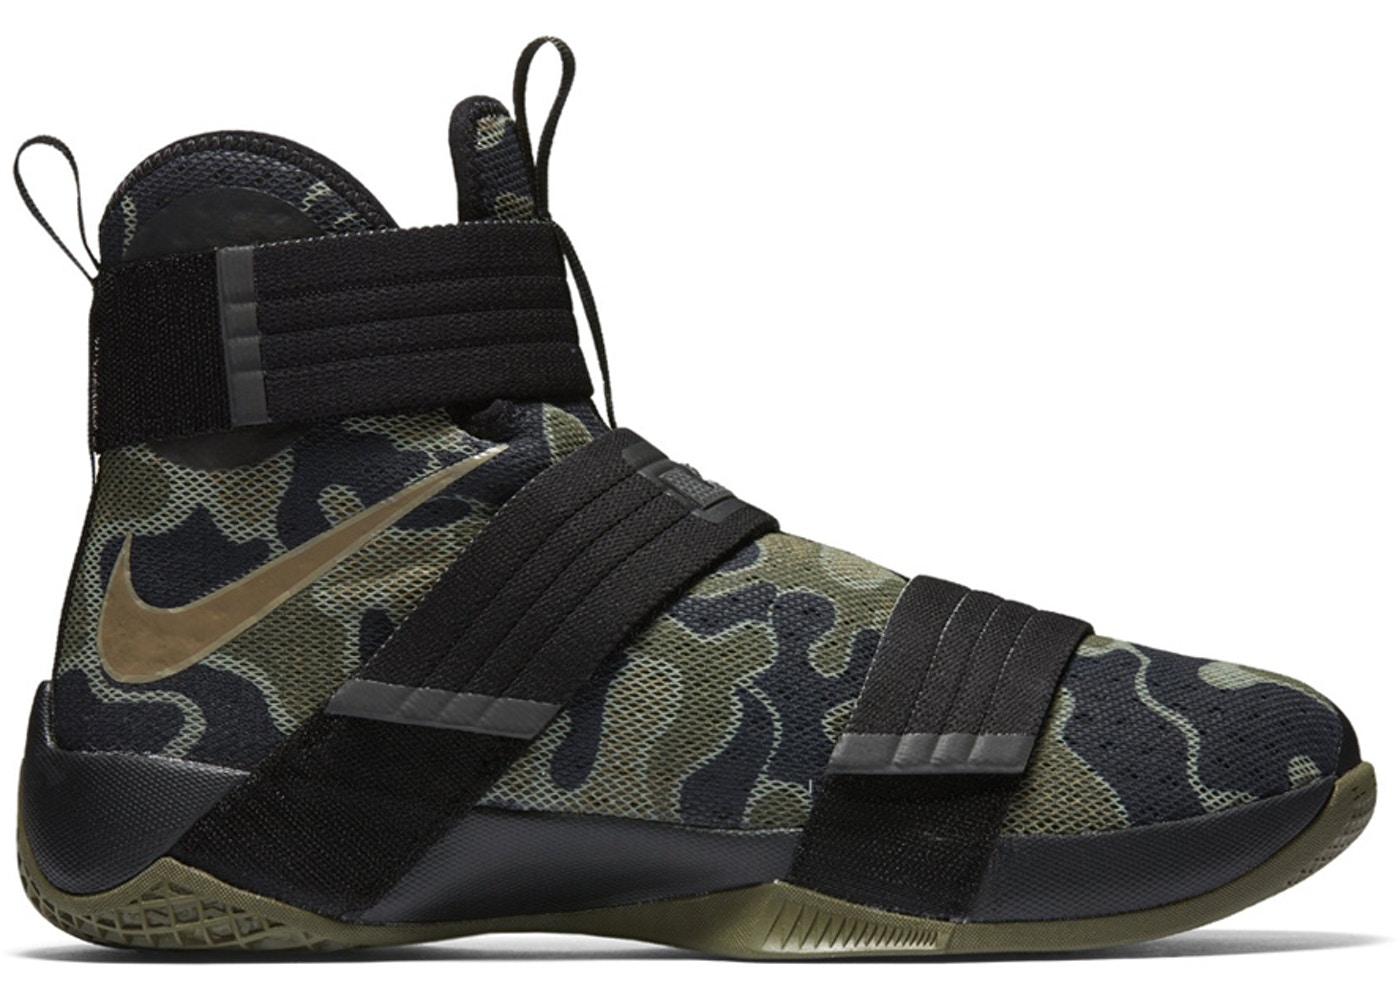 save off 3828e 991cd LeBron Zoom Soldier 10 SFG Camo